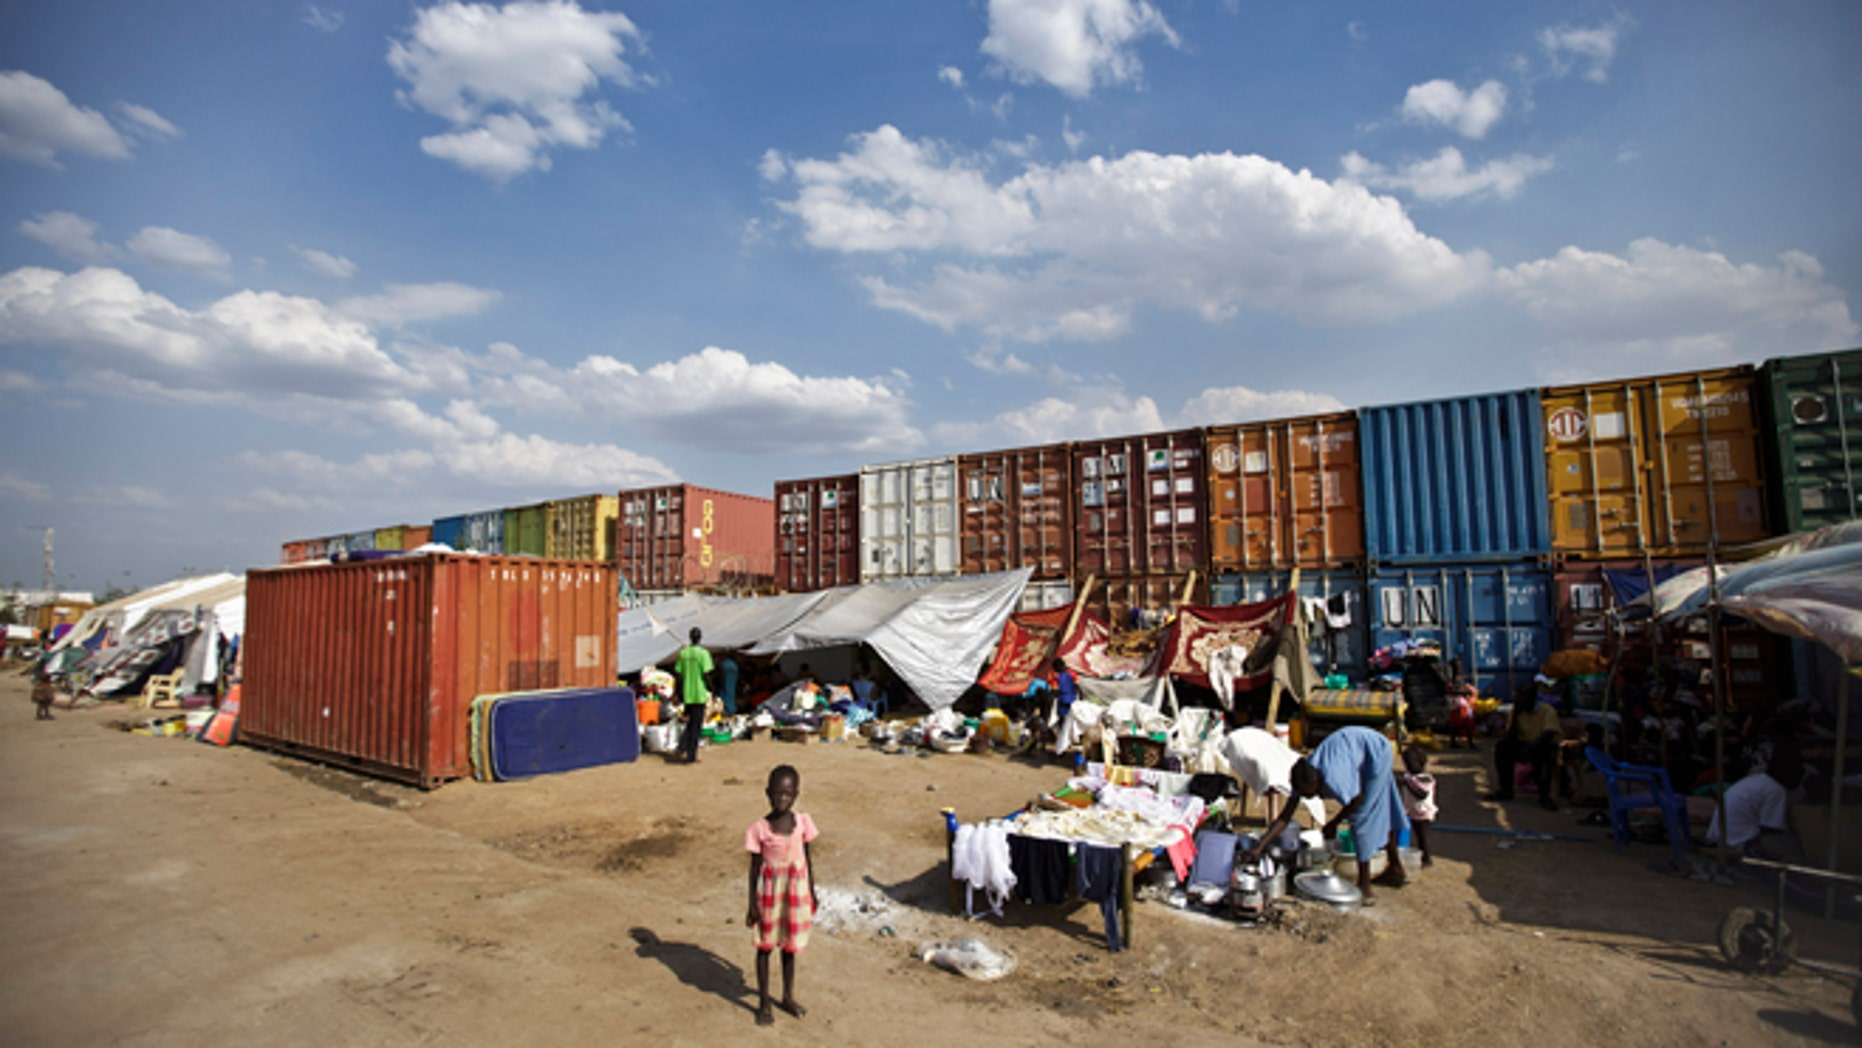 Dec. 29, 2013: In this file photo, a displaced child stands in front of the makeshift tents where she and others live next to shipping containers at a United Nations compound which has become home to thousands of people displaced by the recent fighting, in the capital Juba, South Sudan.